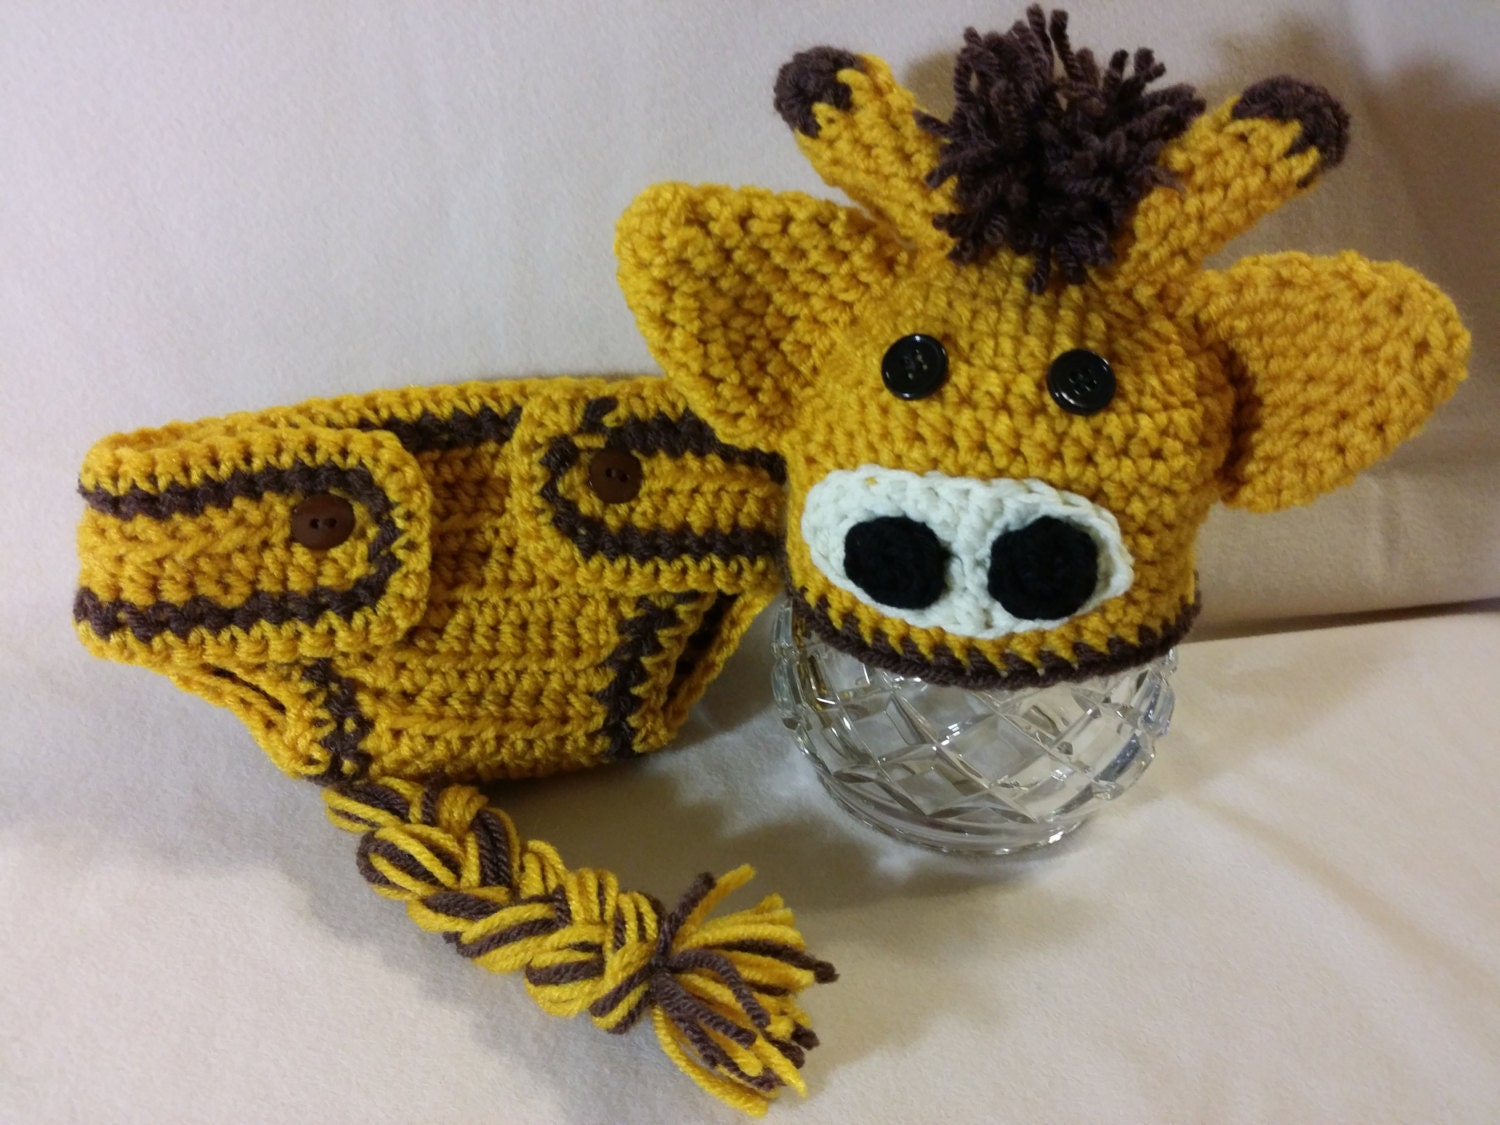 Crochet Hat Pattern Baby Giraffe Beanie Hat : PDF Digital Pattern, Adorable Crochet Giraffe Hat & Diaper ...